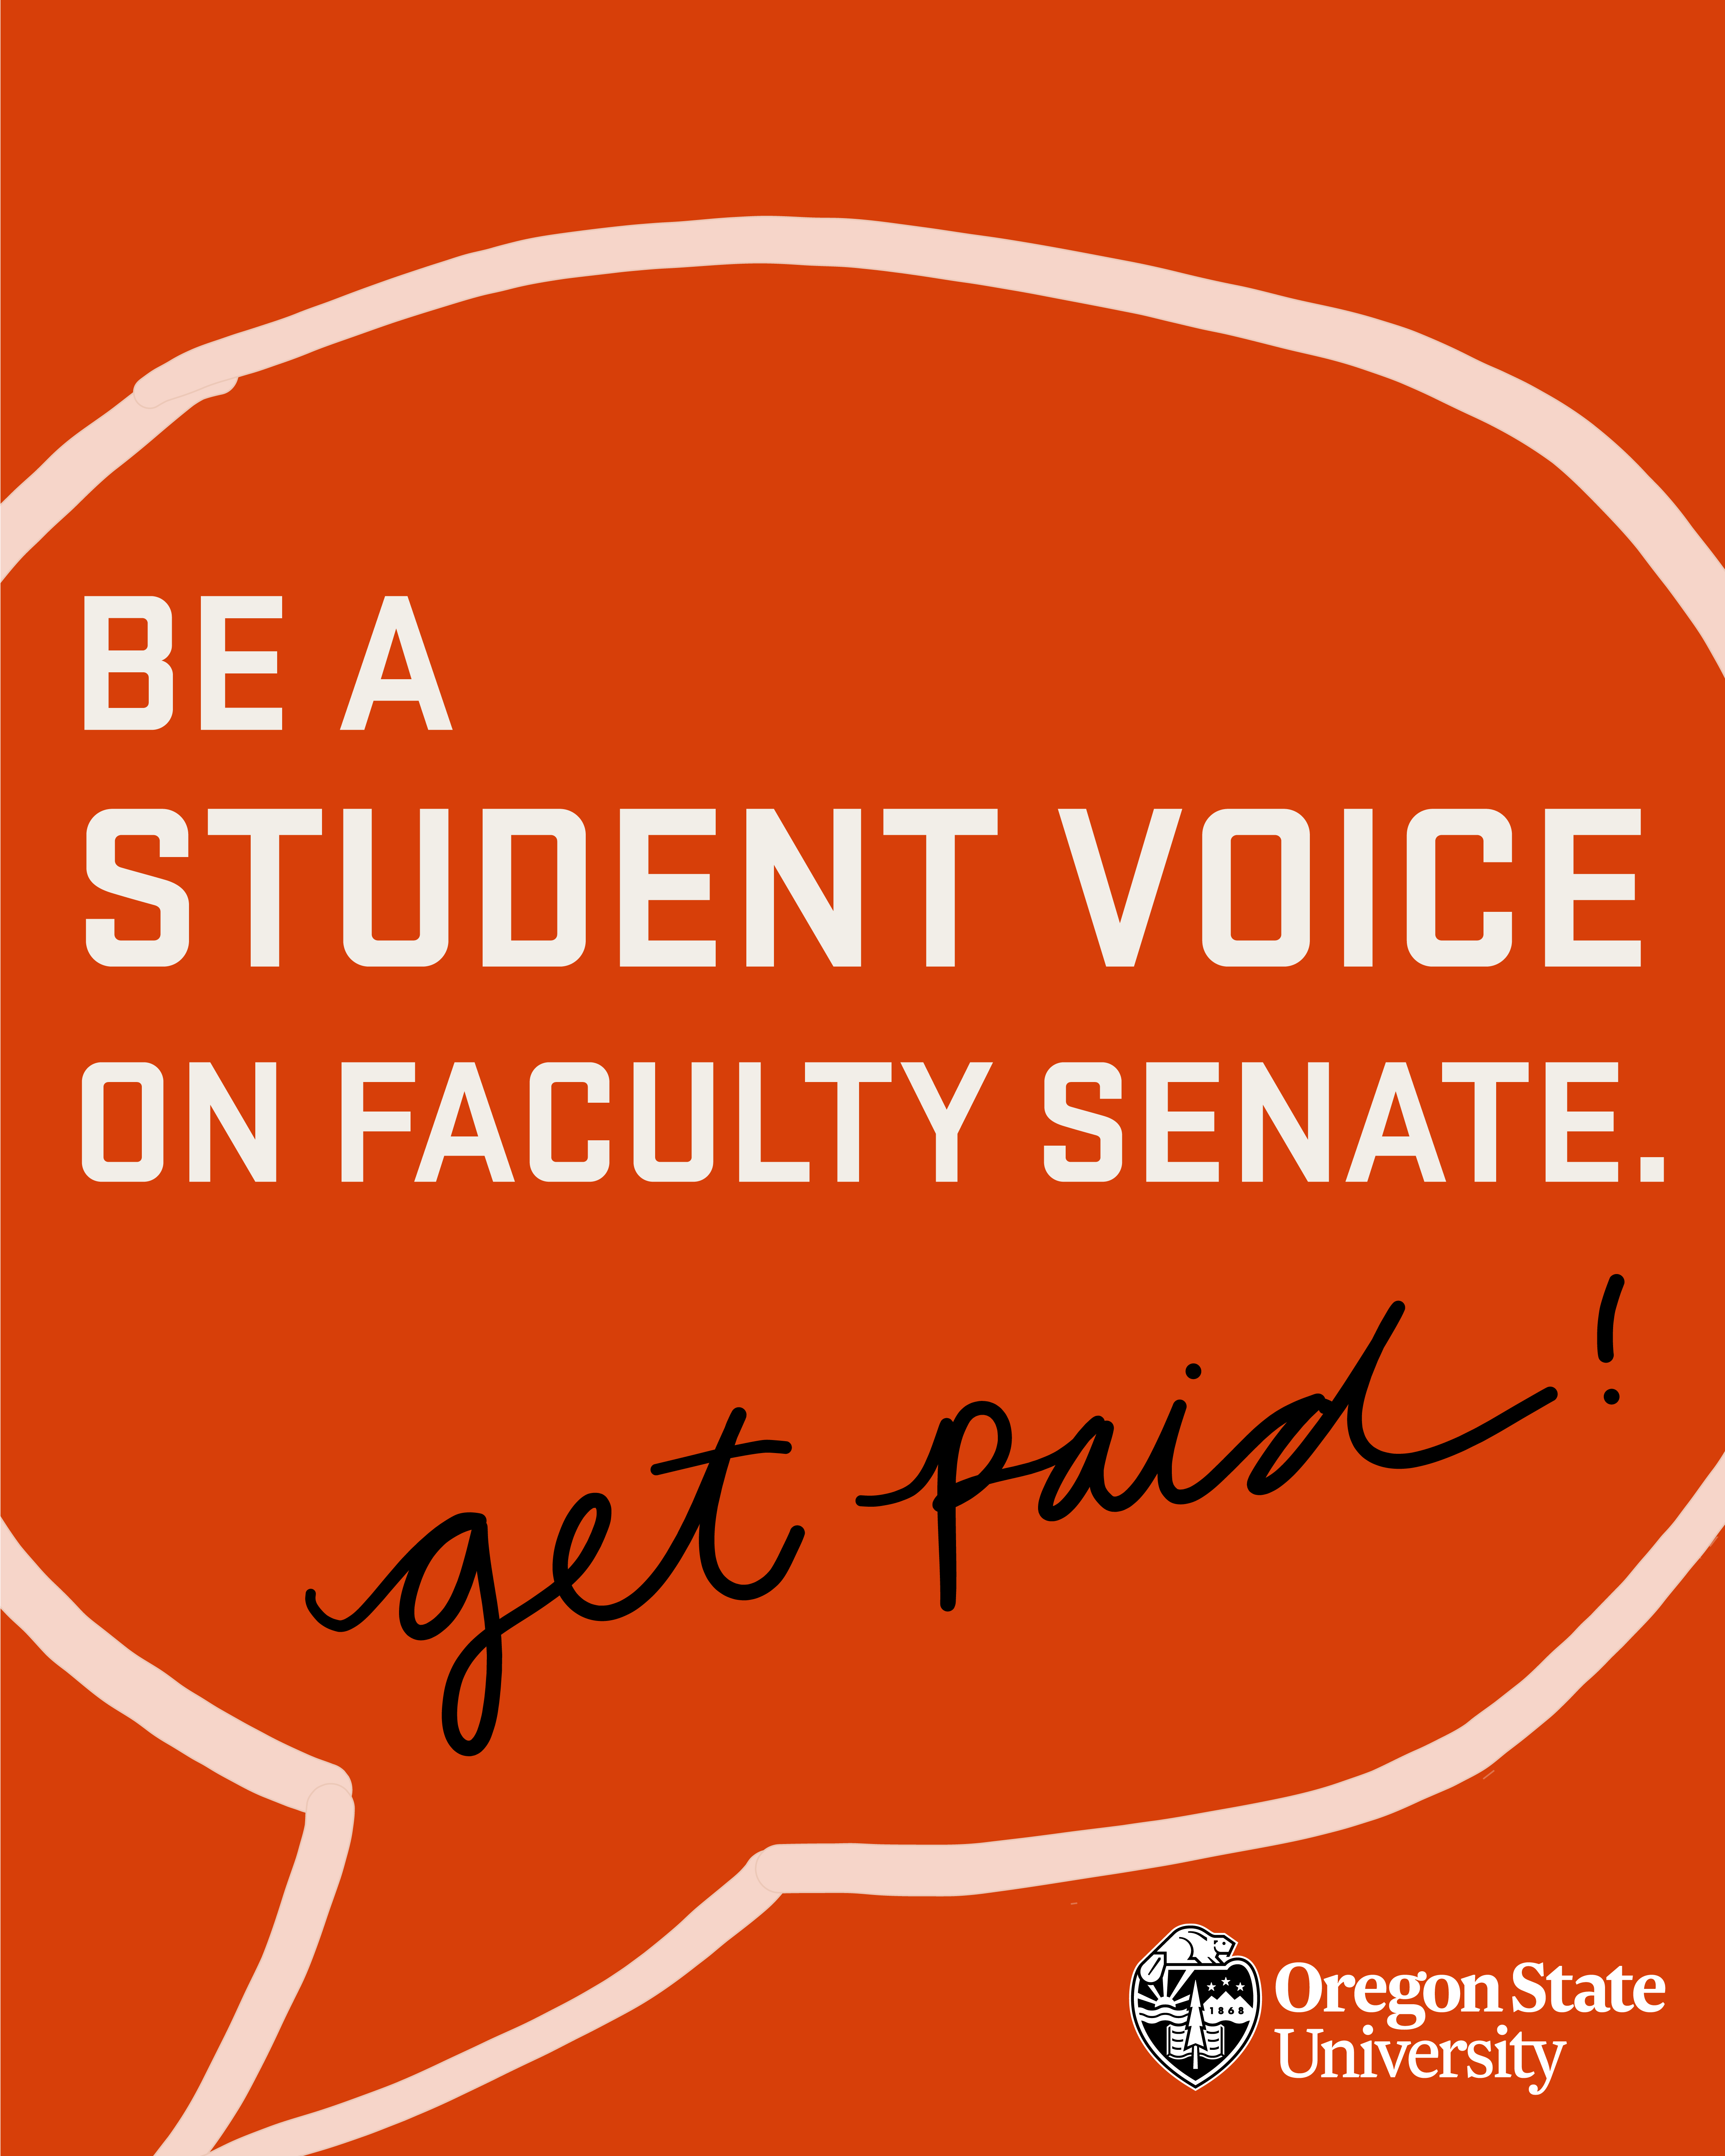 Be a student voice on Faculty Senate: Join Up!